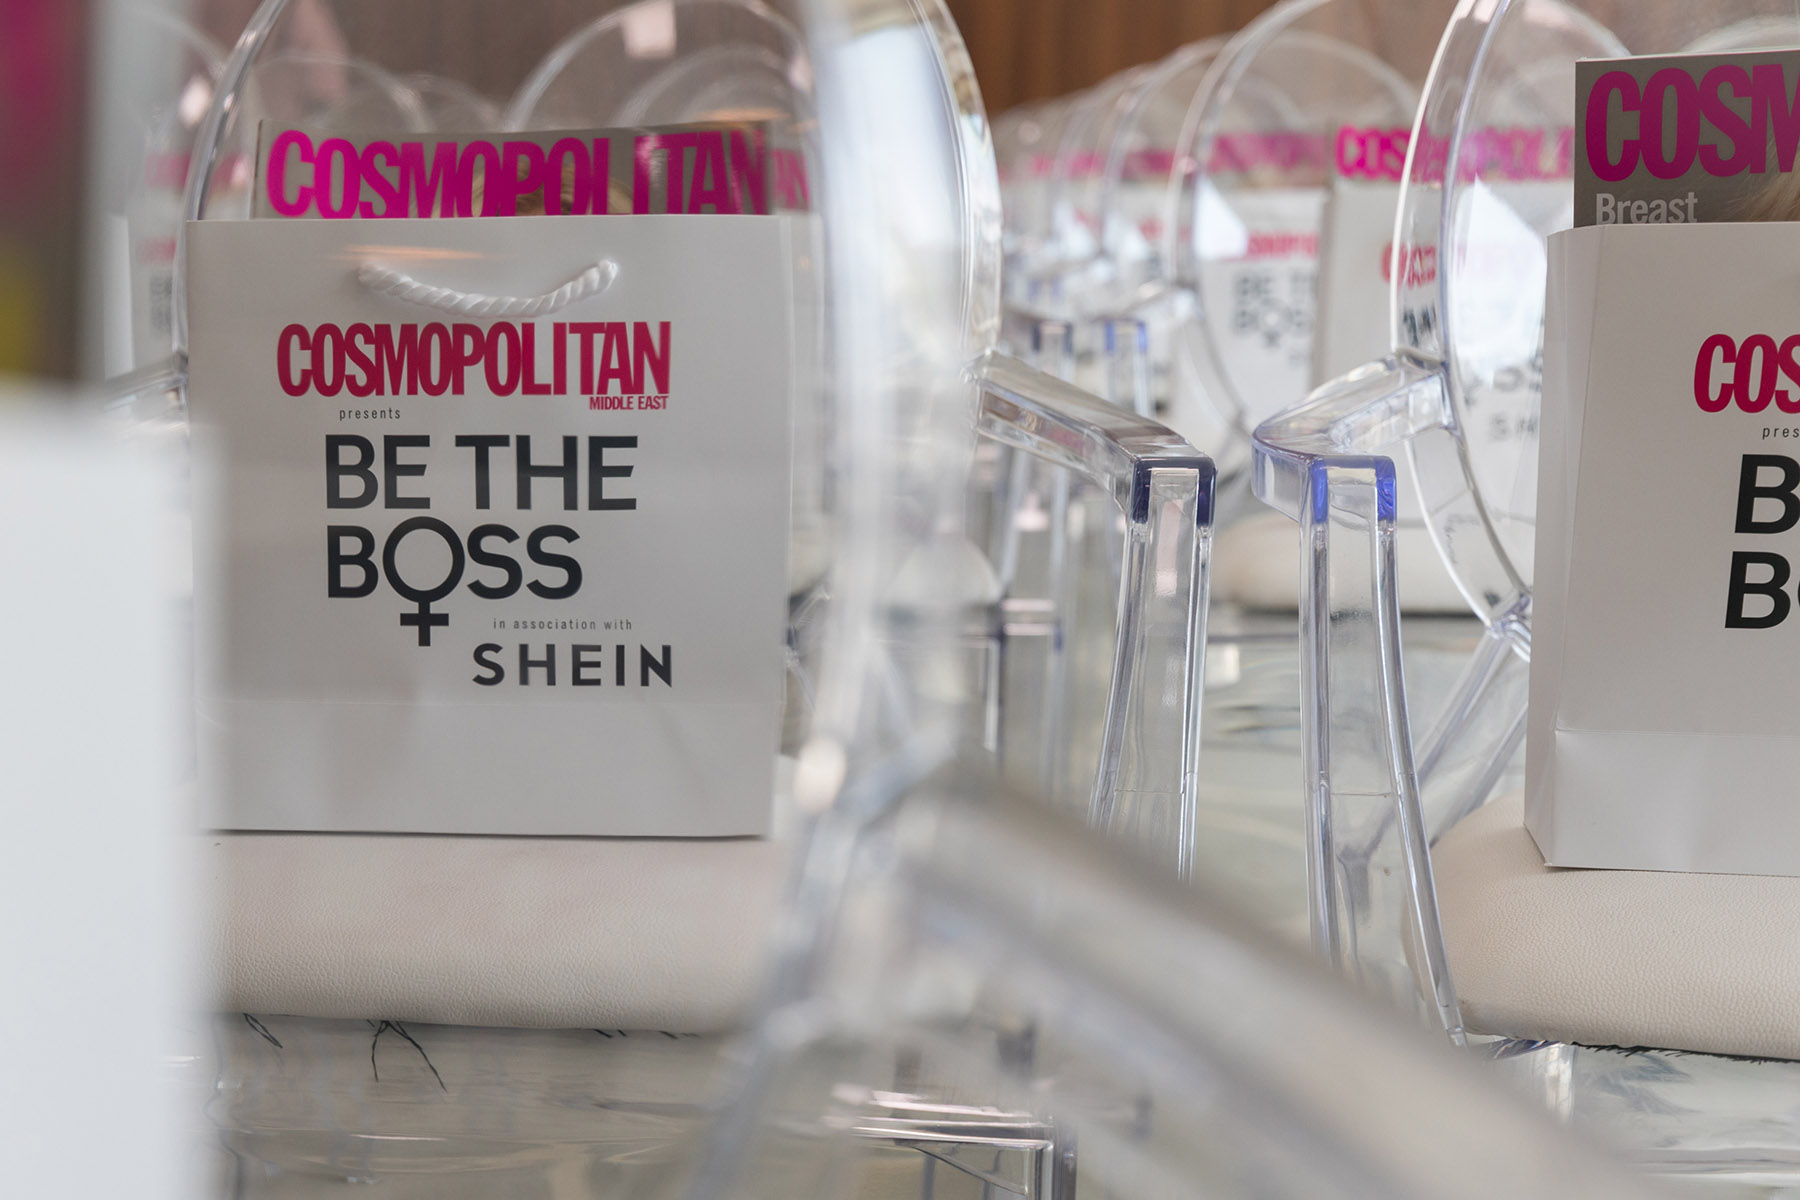 Goodie bags at the Cosmopolitan Shein event by Loesje Kessels Fashion Photographer Dubai